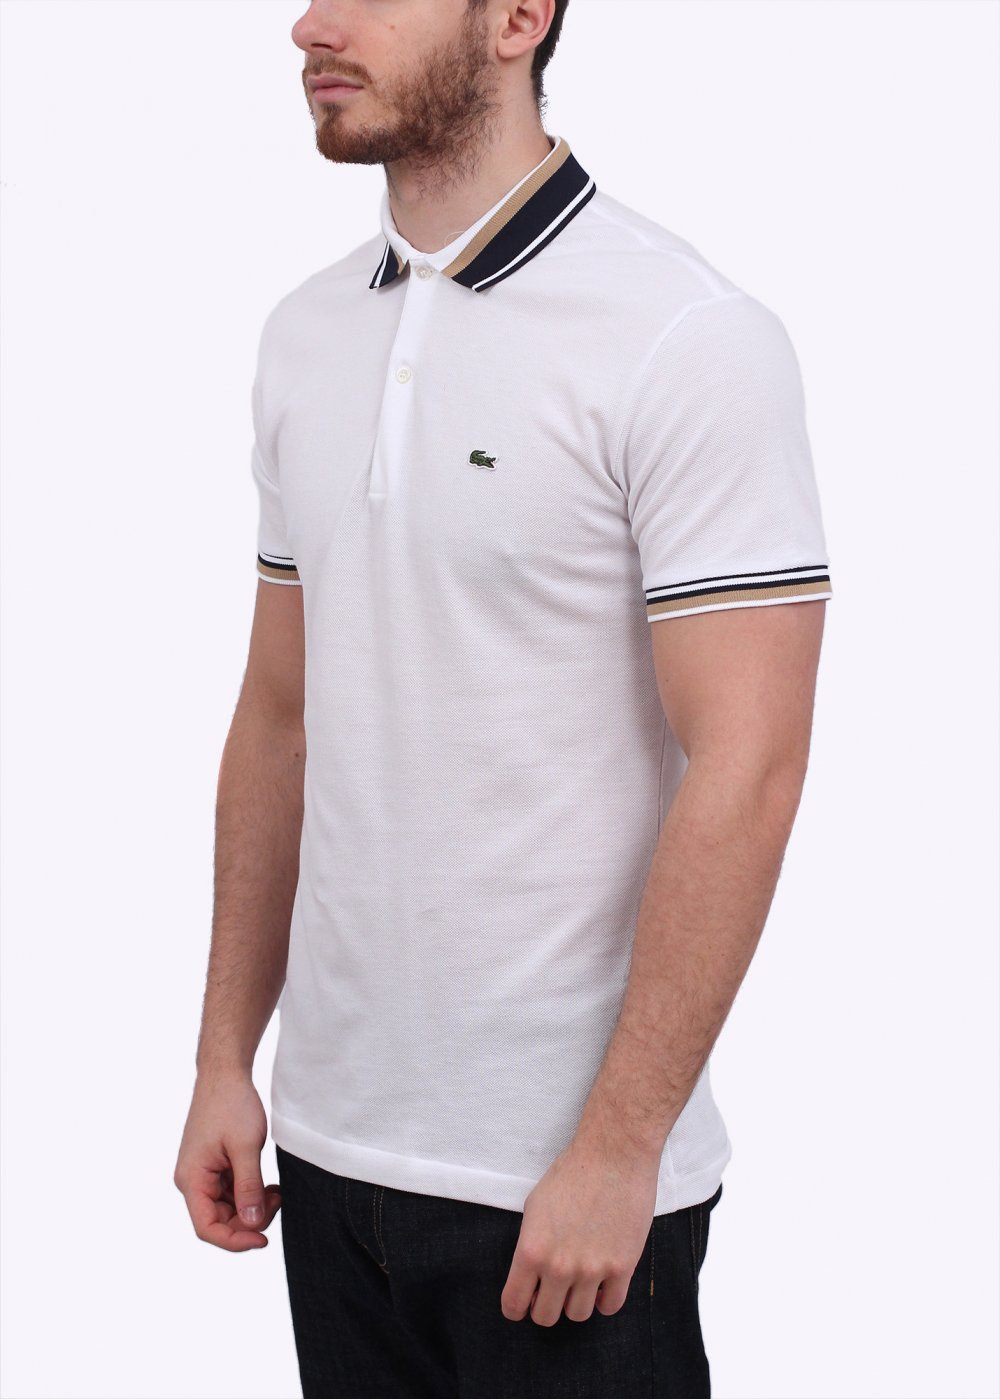 Lacoste detailed collar polo shirt white for Lacoste poloshirt weiay